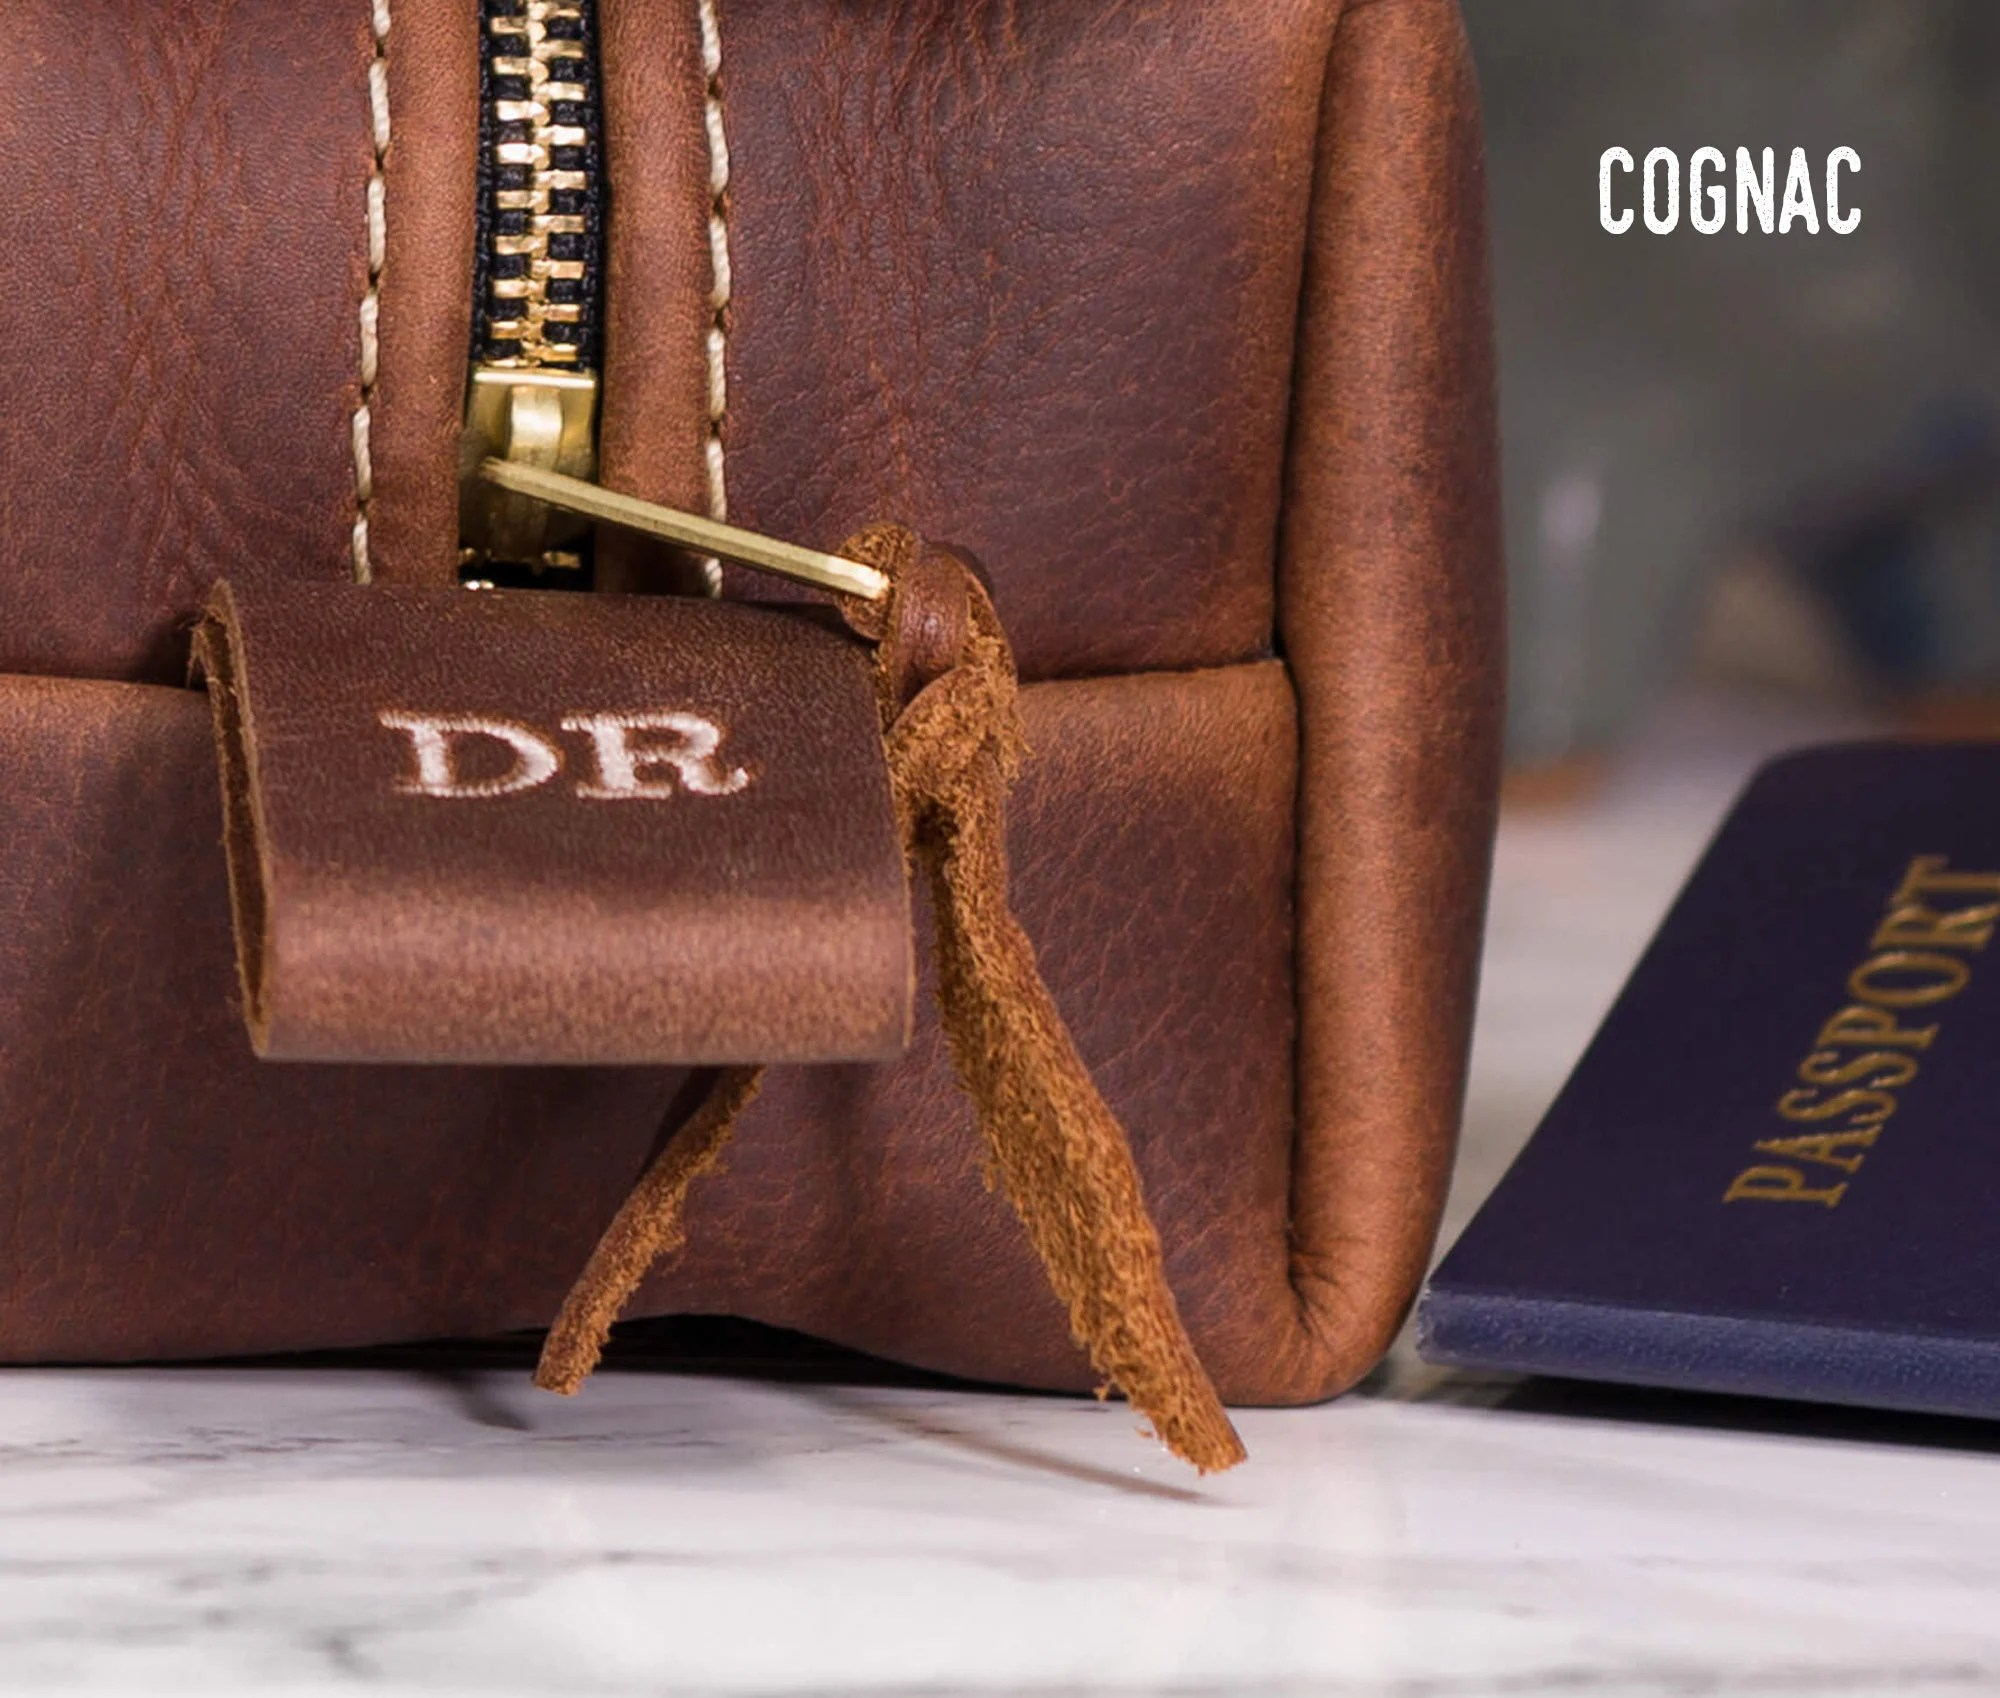 Personalized Leather Dopp Kit Bag Leather Toiletry Bag Cognac